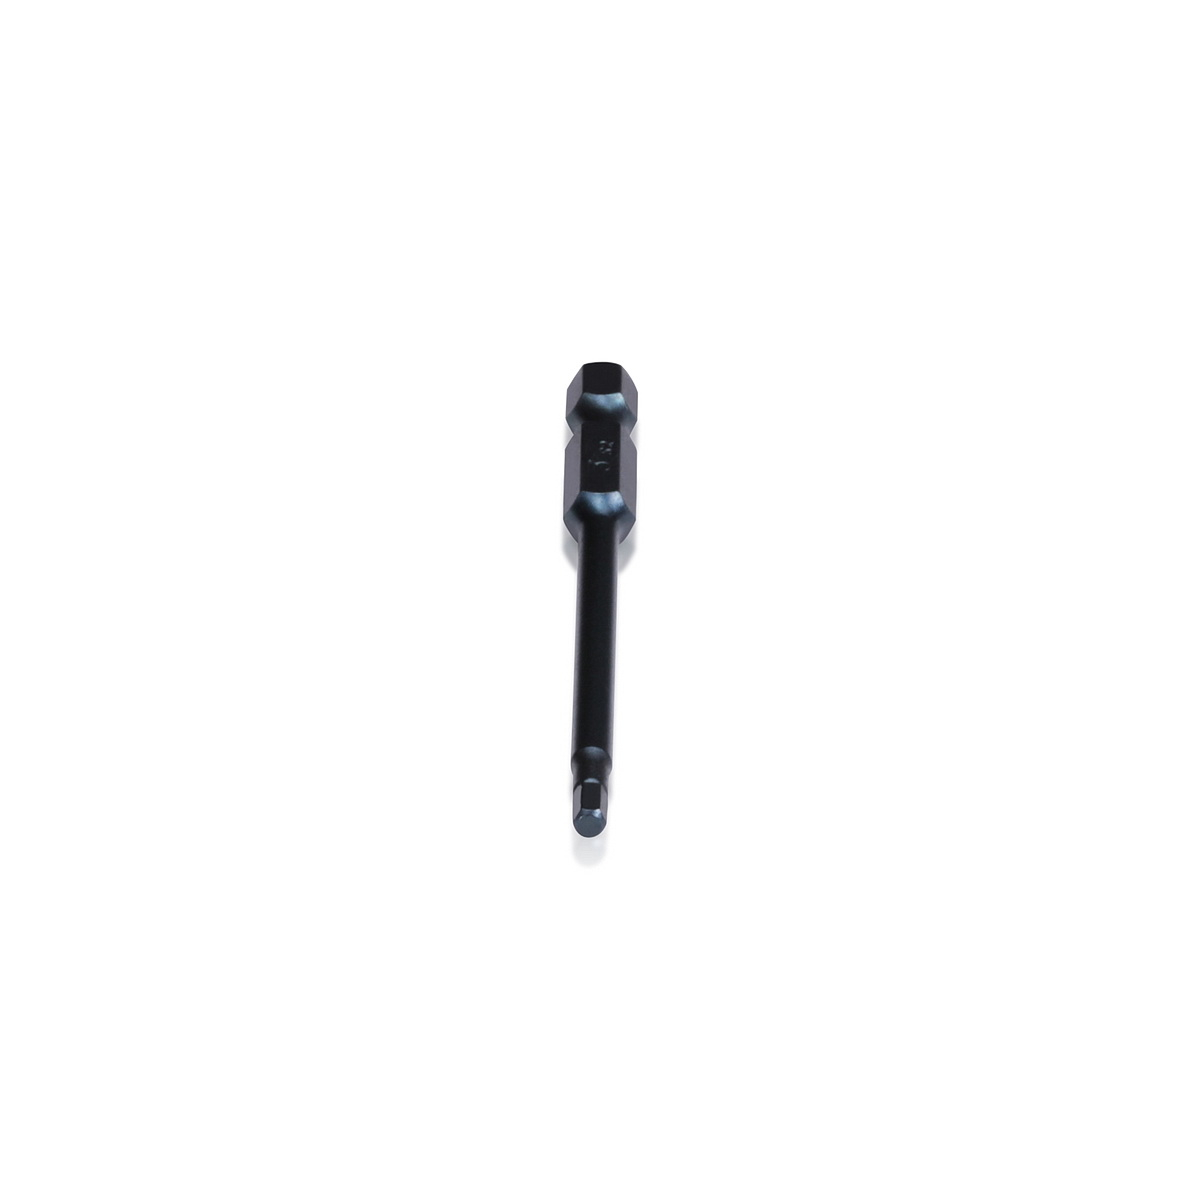 Hex Driver Bit 3.0mm, Length: 3 1/8